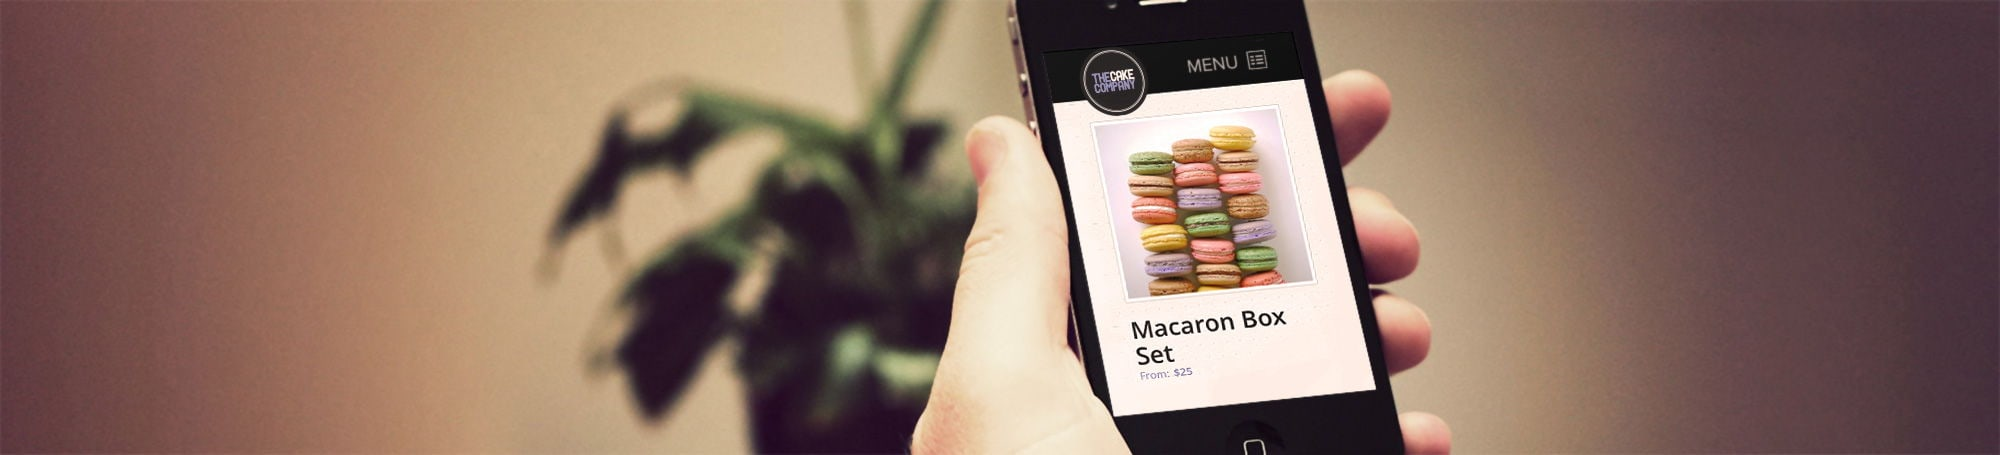 macarons-online-shop-mobile